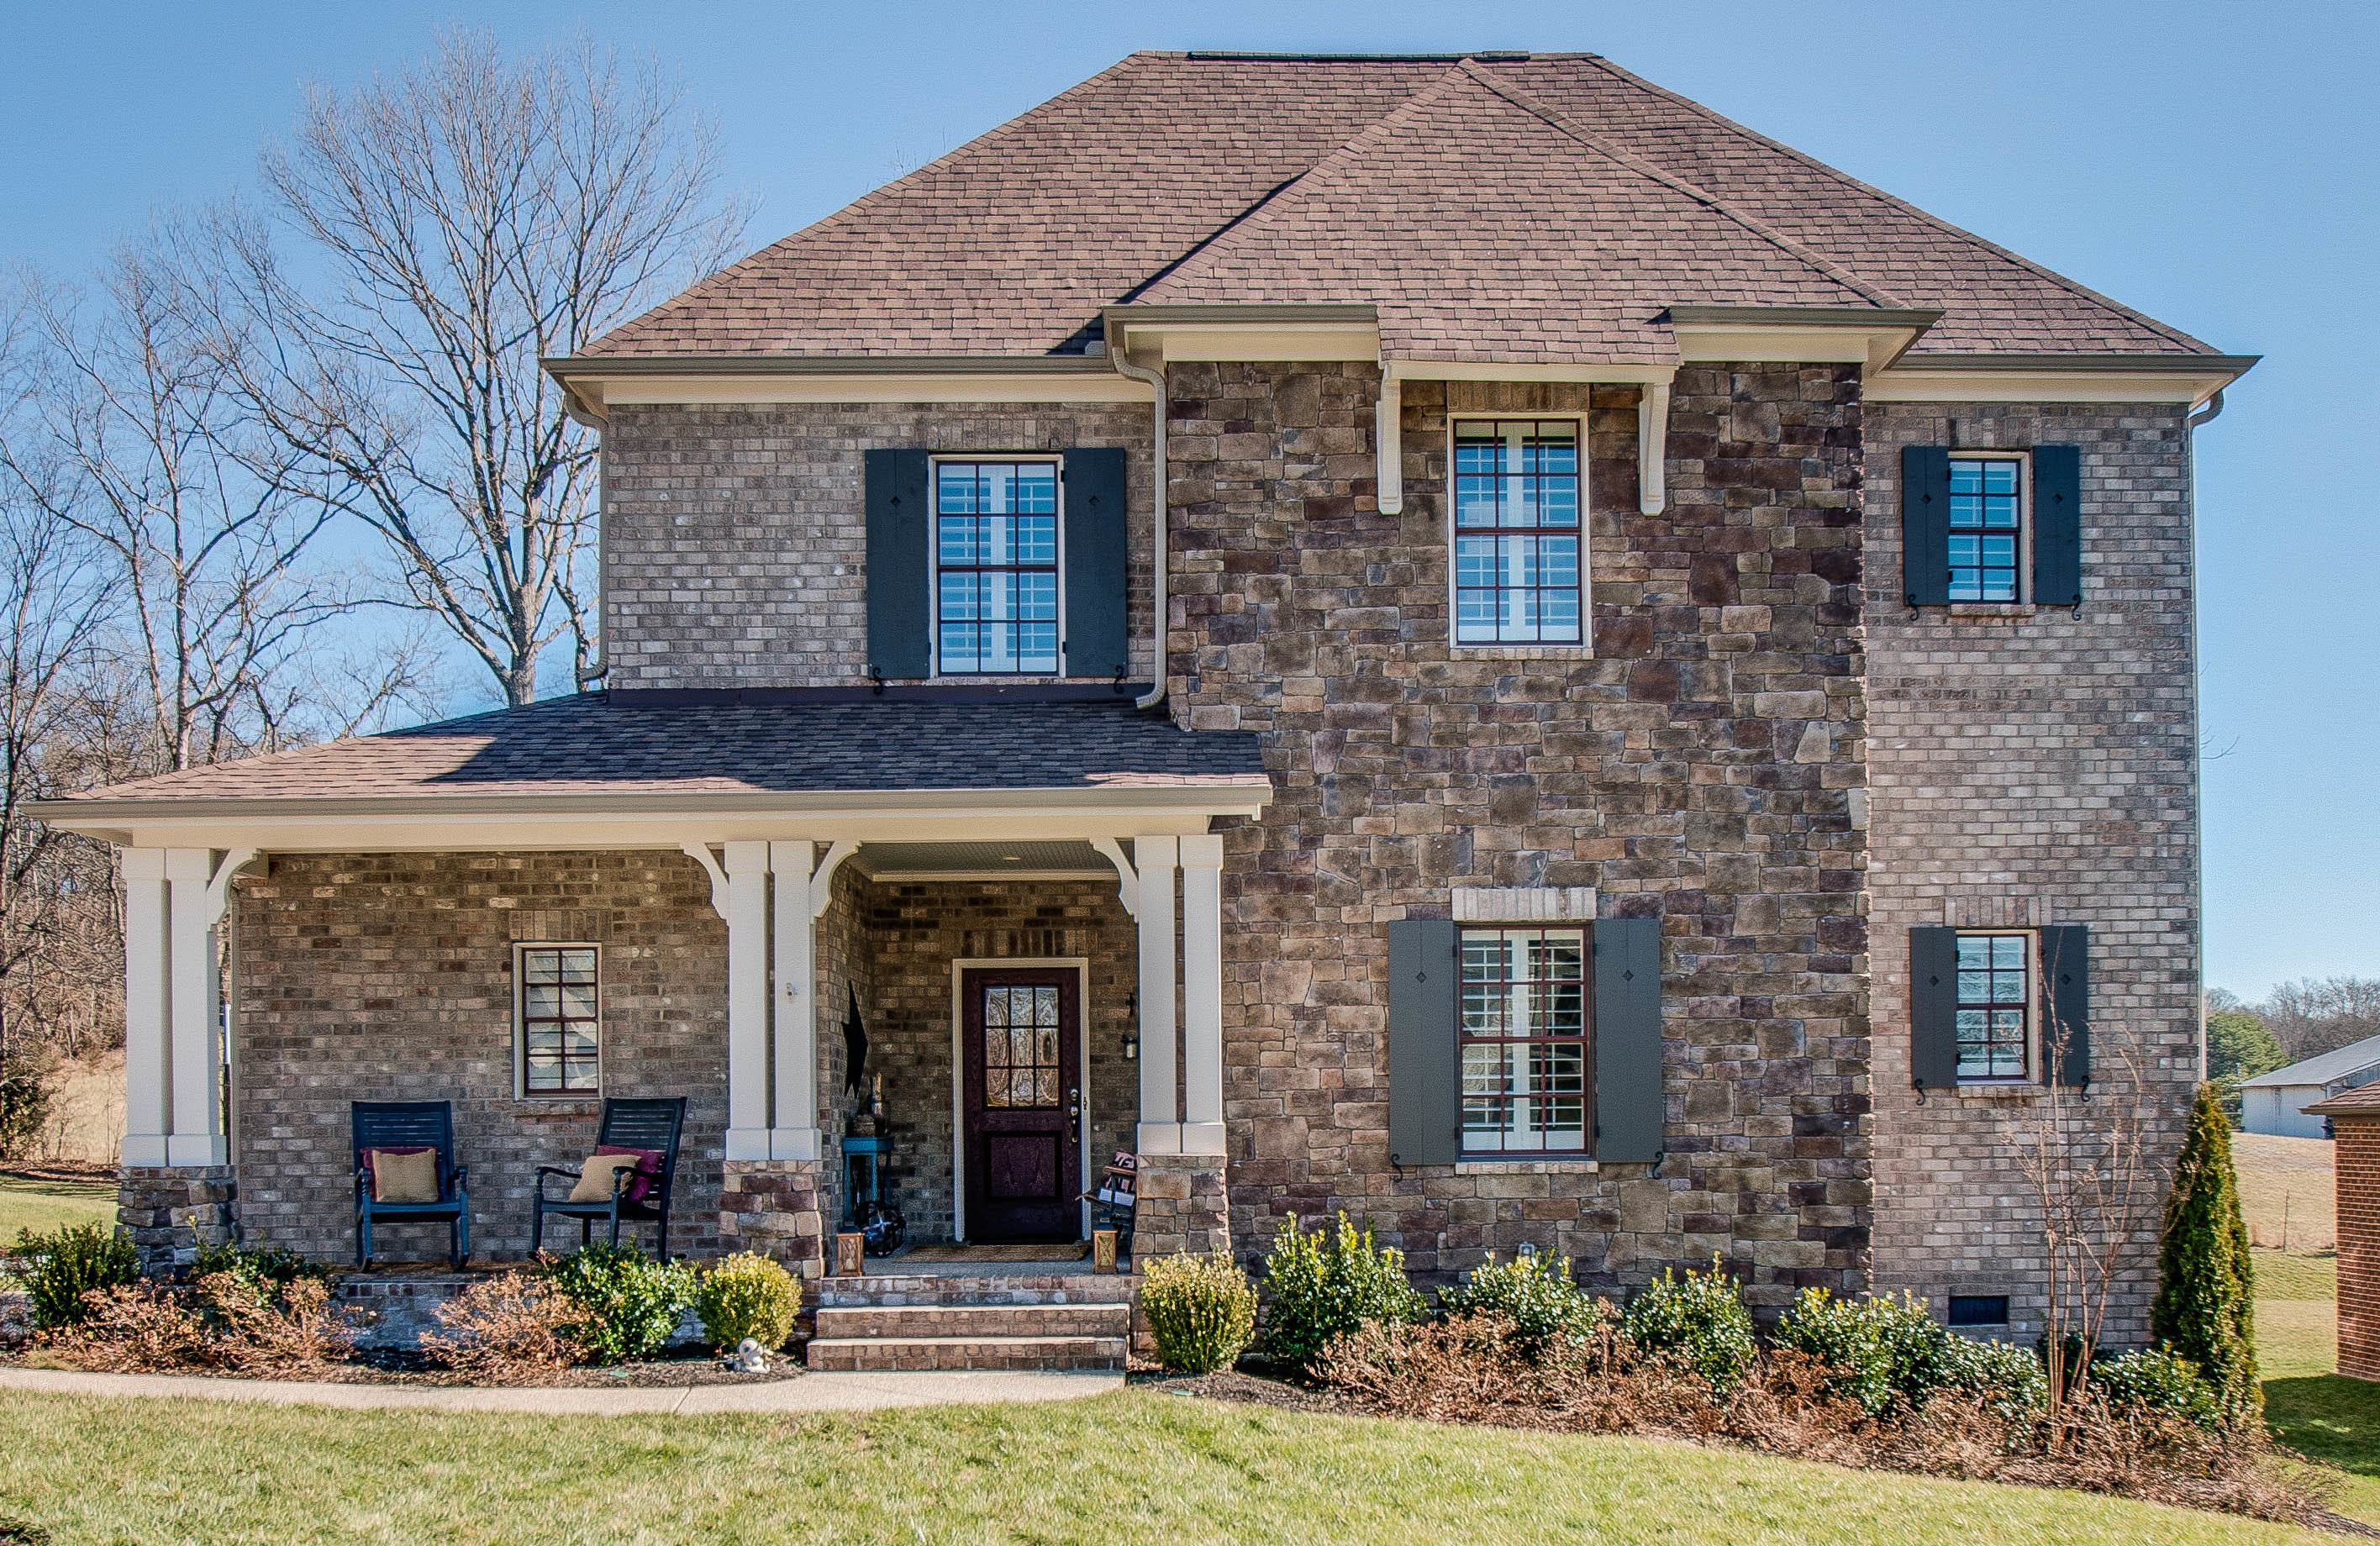 Hom In Sessel Coming Soon At 3064 Cecil Lewis Dr Franklin Tn 37067 Is A Custom